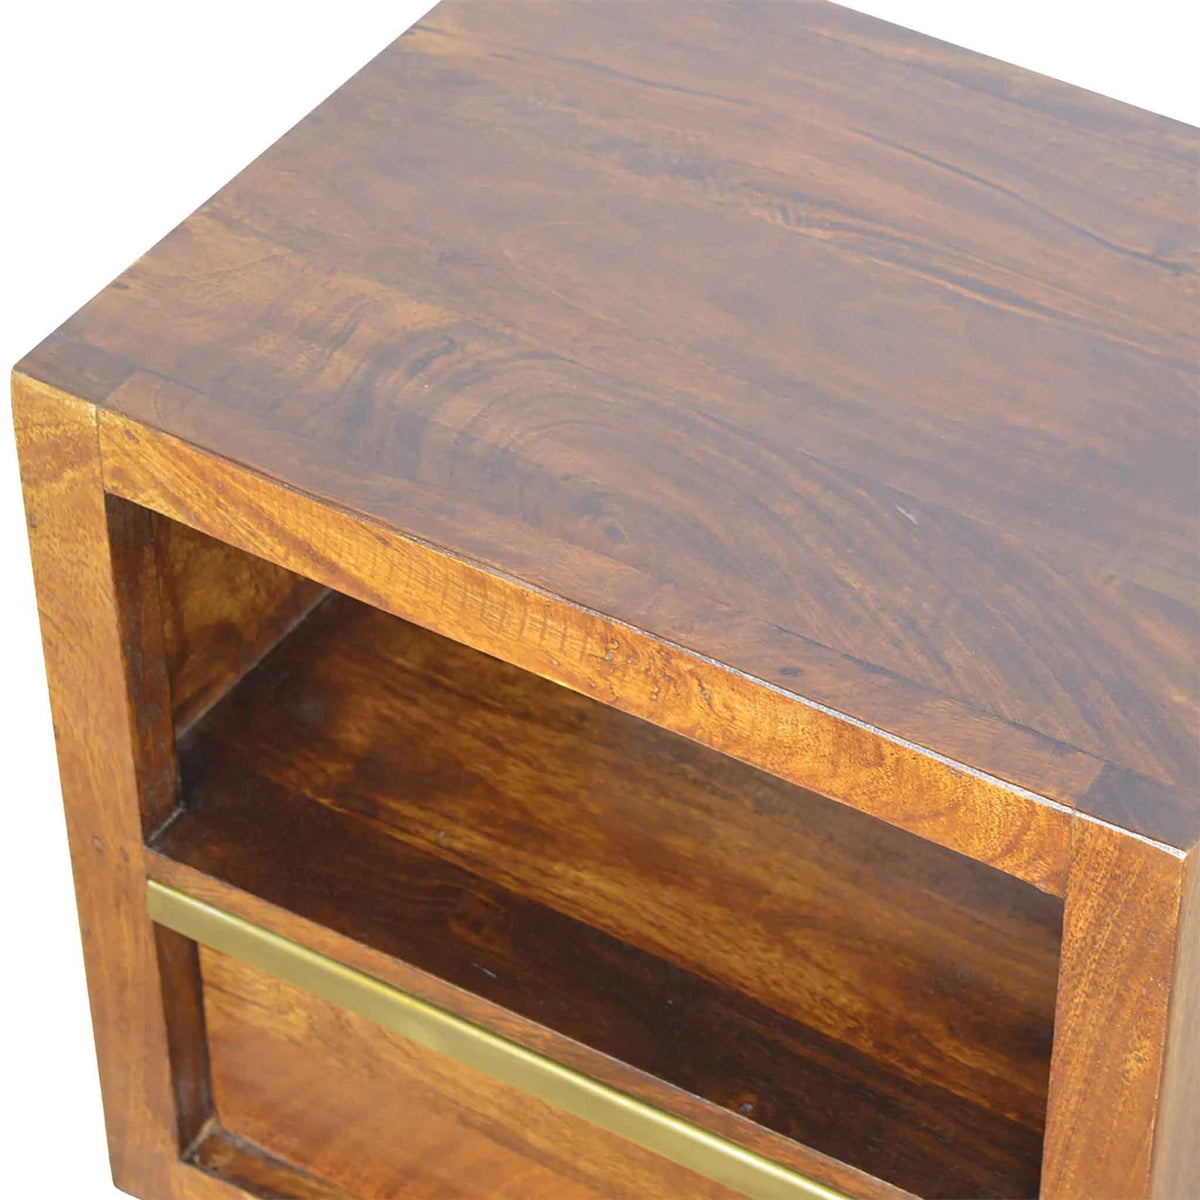 Top view of Artisan Drawer Chestnut Bedside Table with Drawer